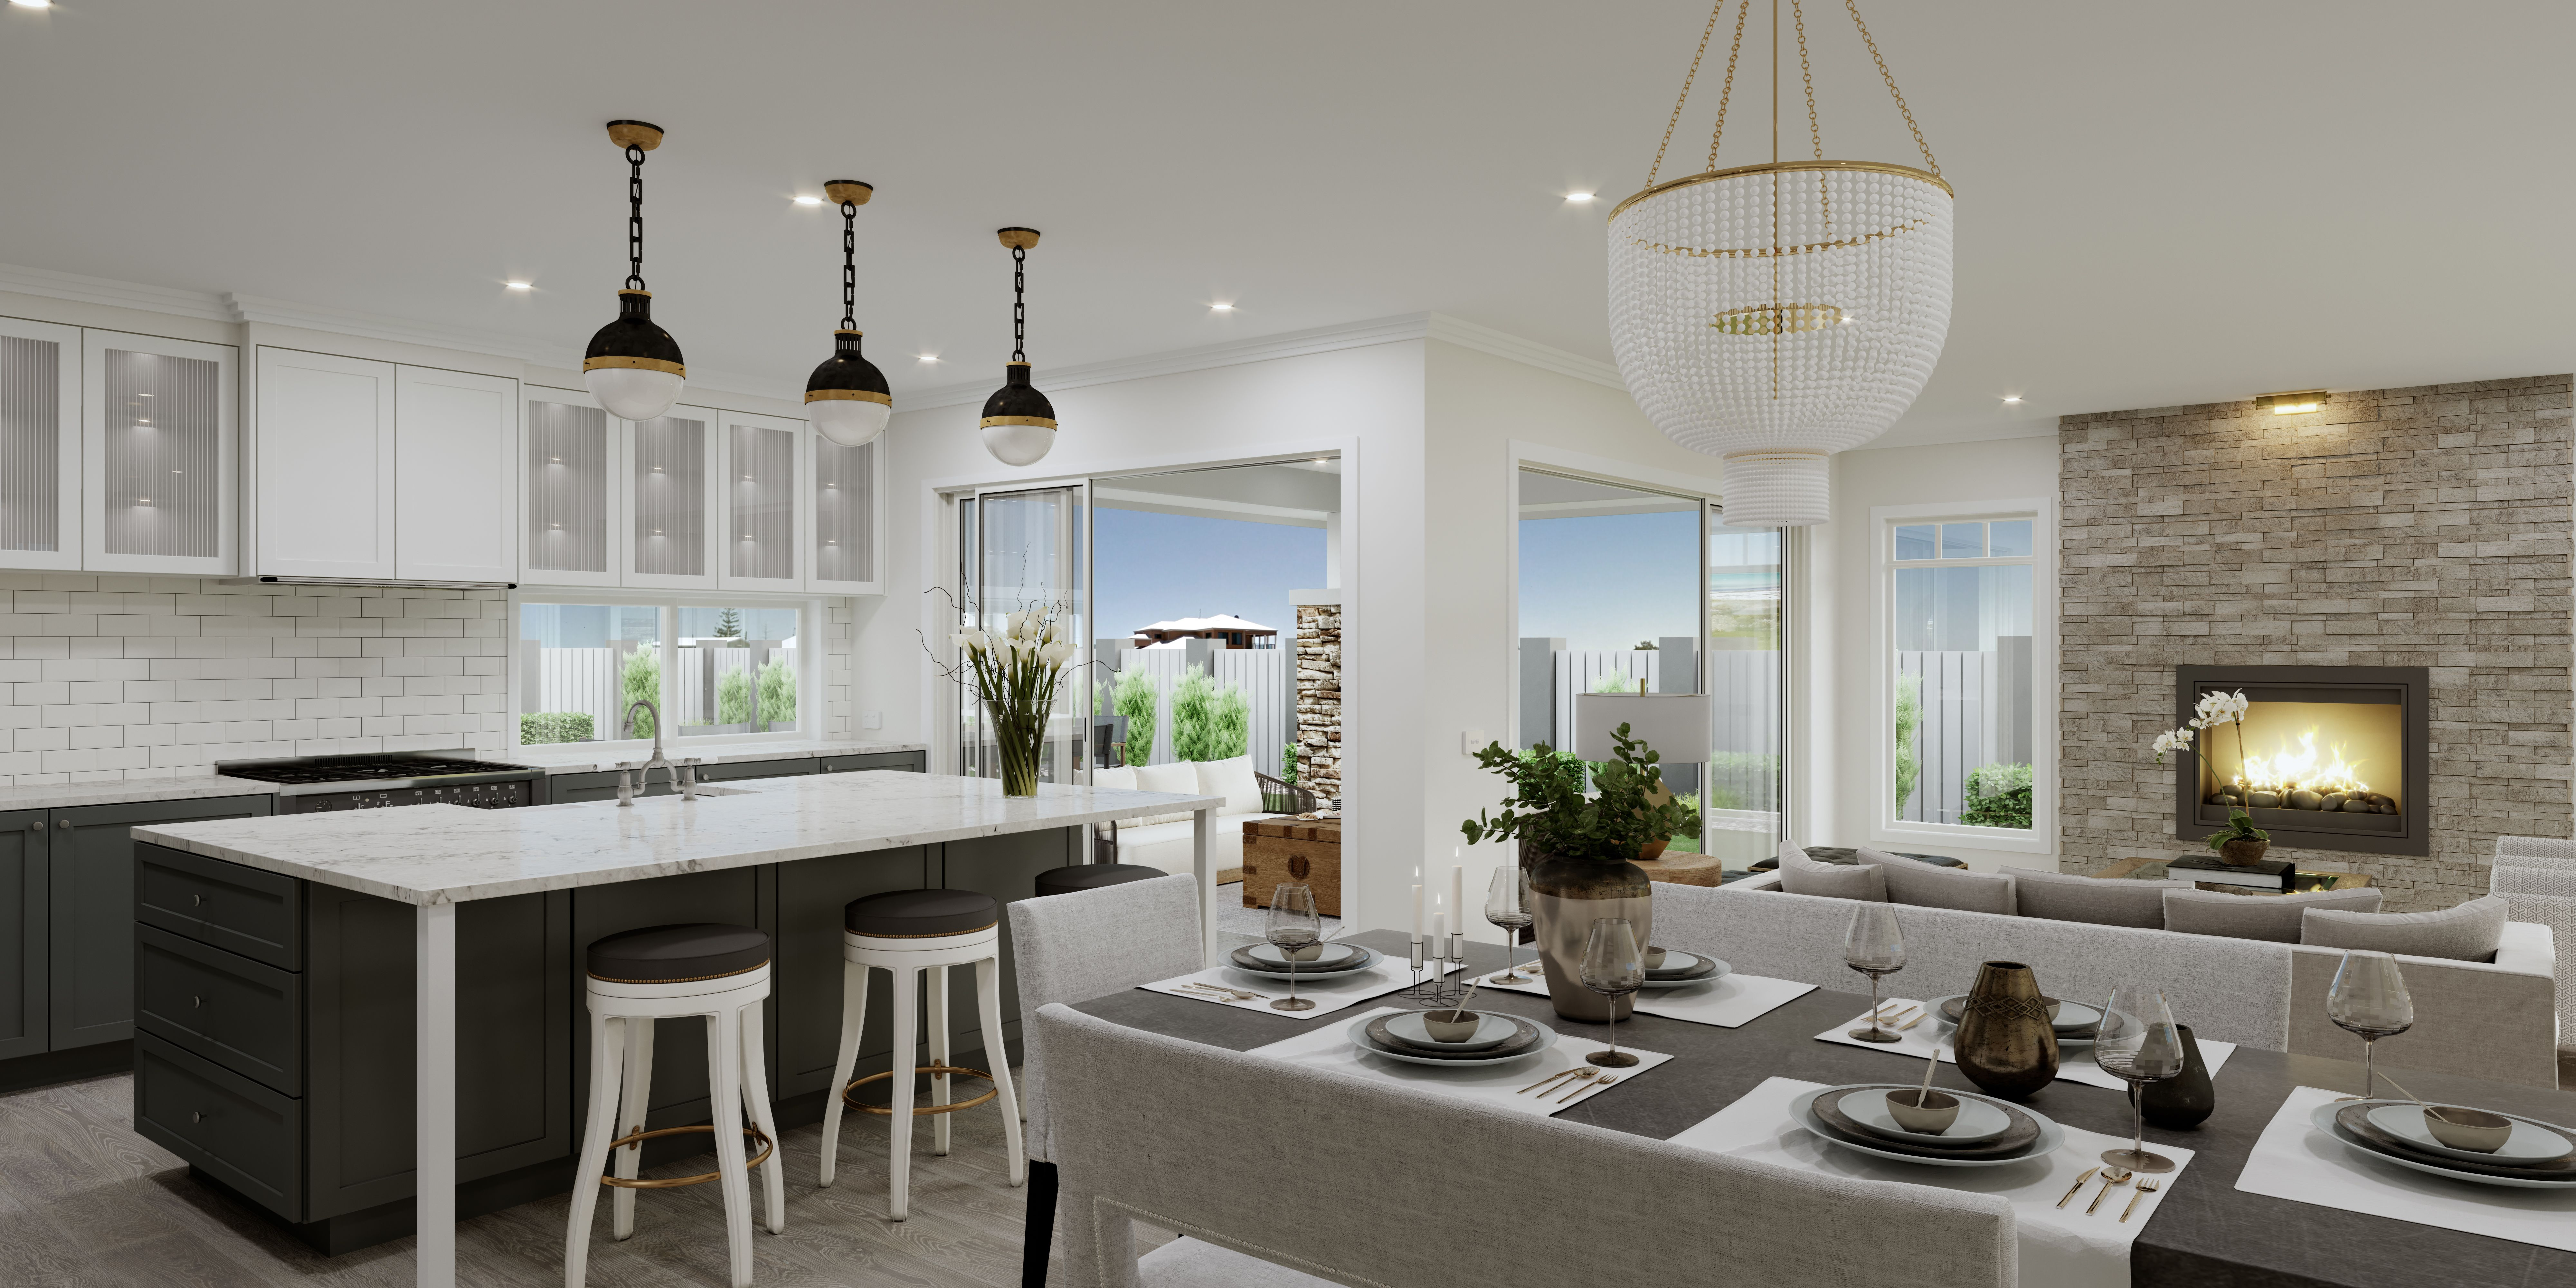 The Hamptons is a style that Australians can relate to – it is fully in tune with our white, bright landscape and indoor/outdoor living style and will appeal to those with a more conservative take on design. The colour palette features white on walls and grey timber floors, carpets and benchtops and the tapware and door handles are traditional. The shaker profile doors in the kitchen and bathrooms are contrasted with white subway tiles.